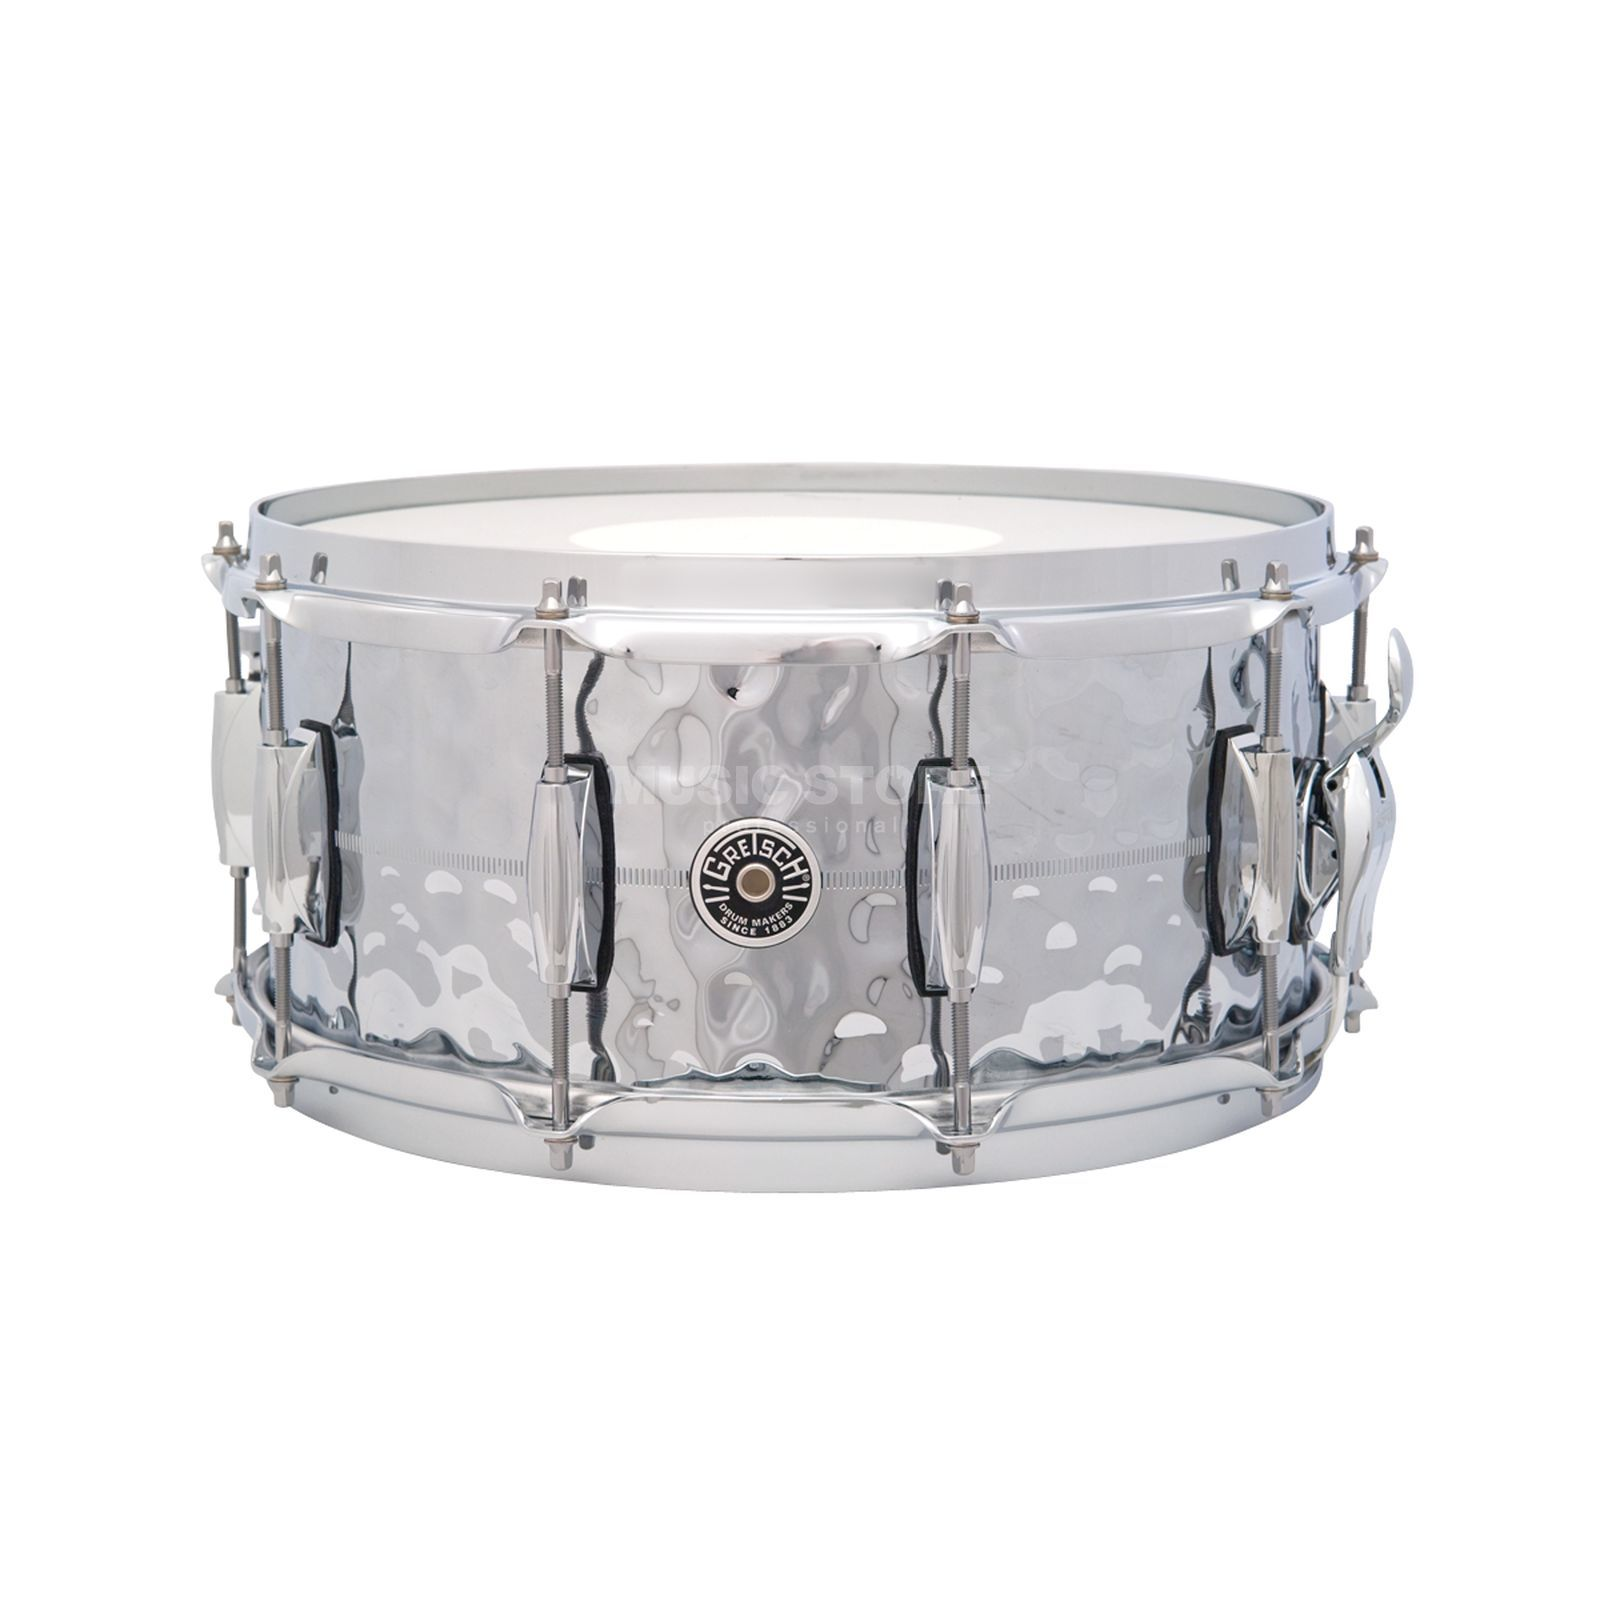 "Gretsch Brooklyn Snare 14""x6.5"", Hammered Chrome Produktbillede"